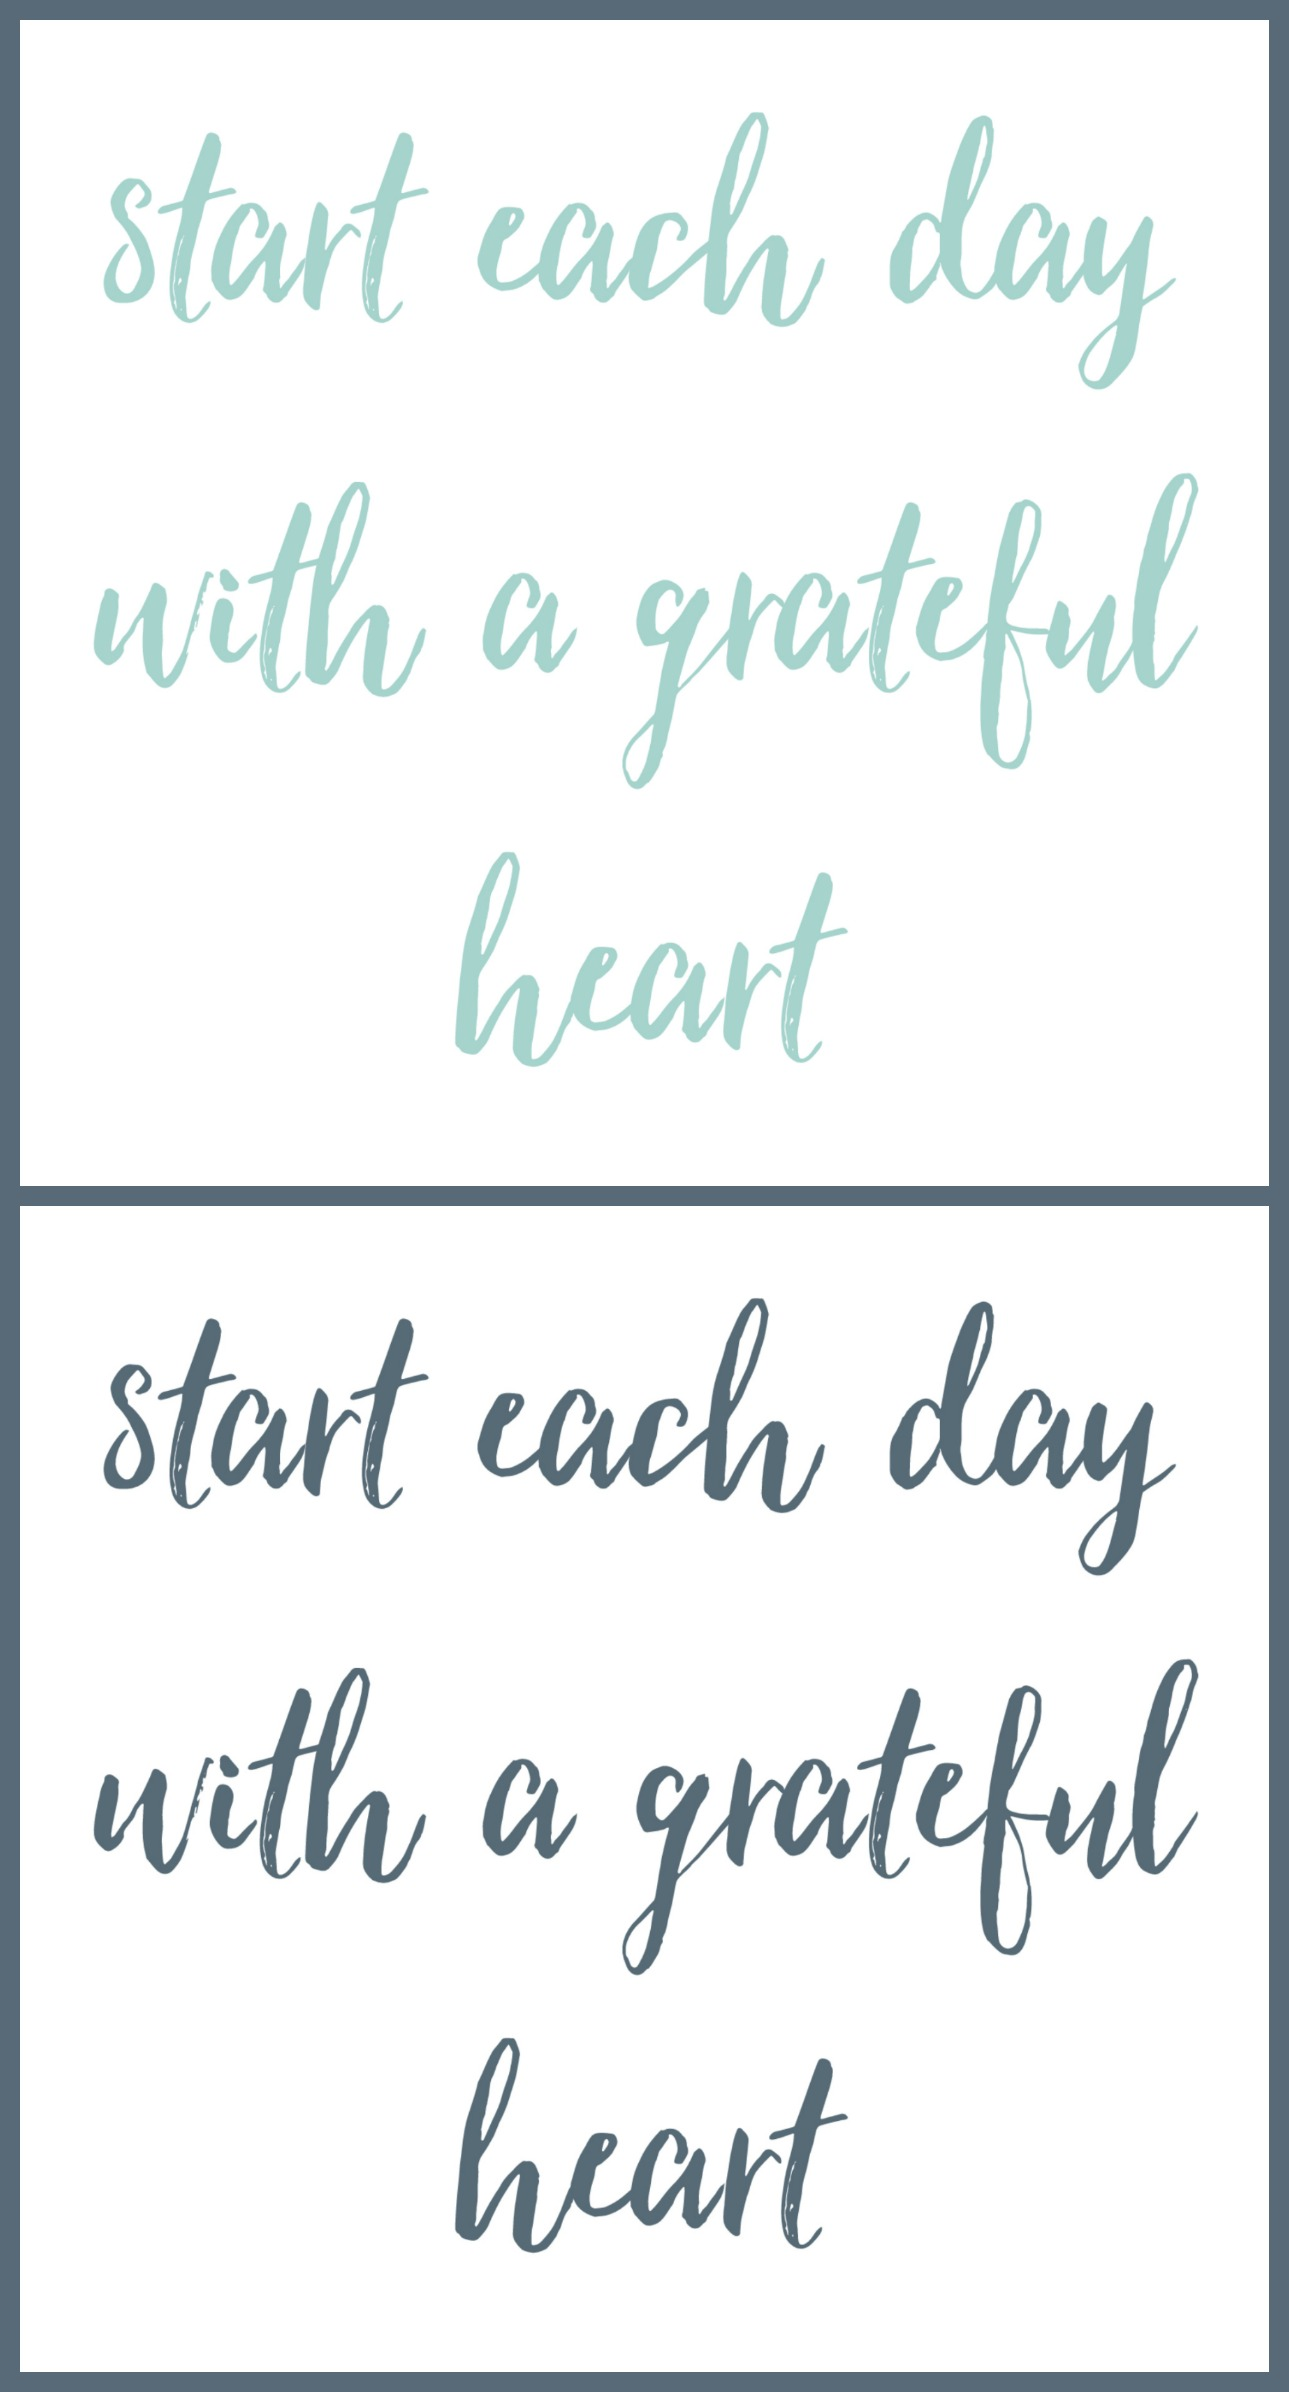 Start each day with a grateful heart free printables in grey and blue